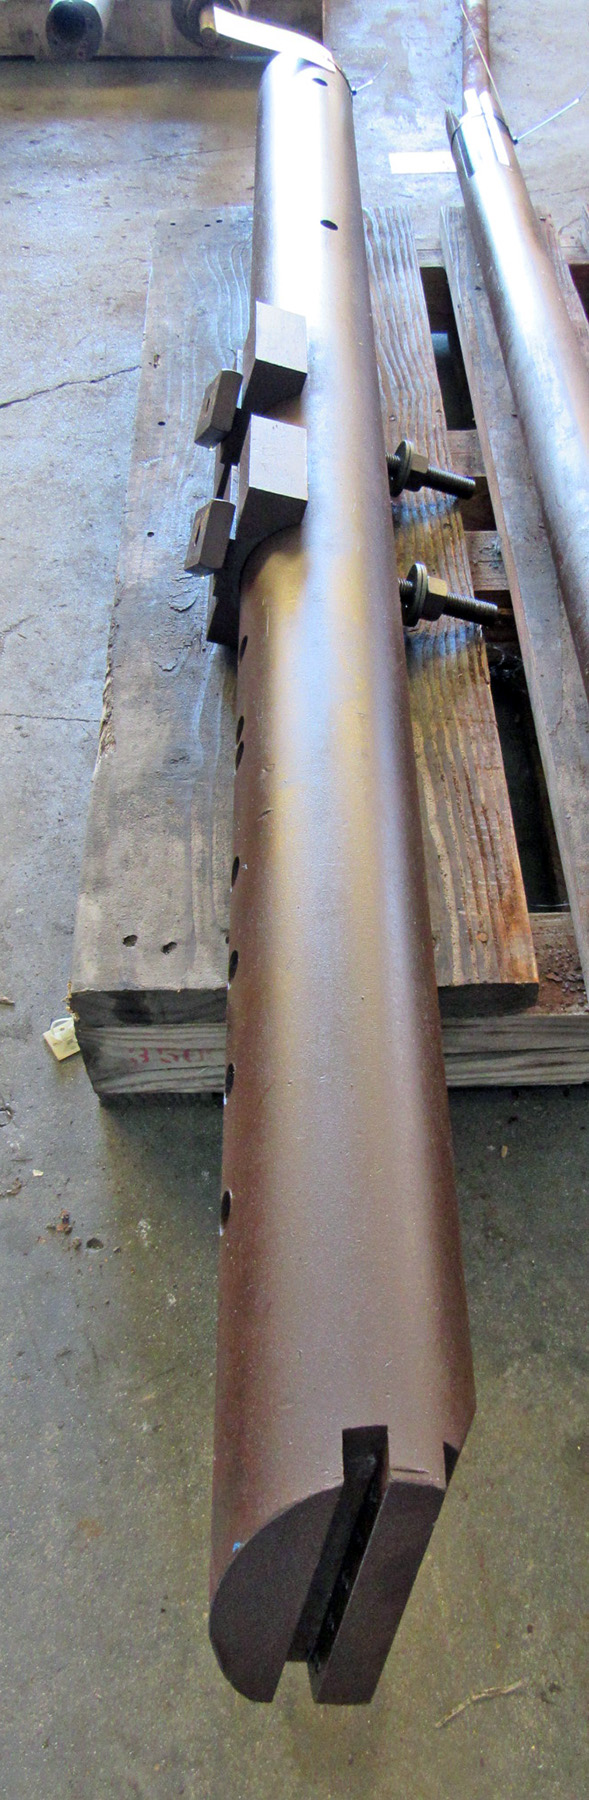 "USED, 5"" X 72"" LATHE BORING BAR"